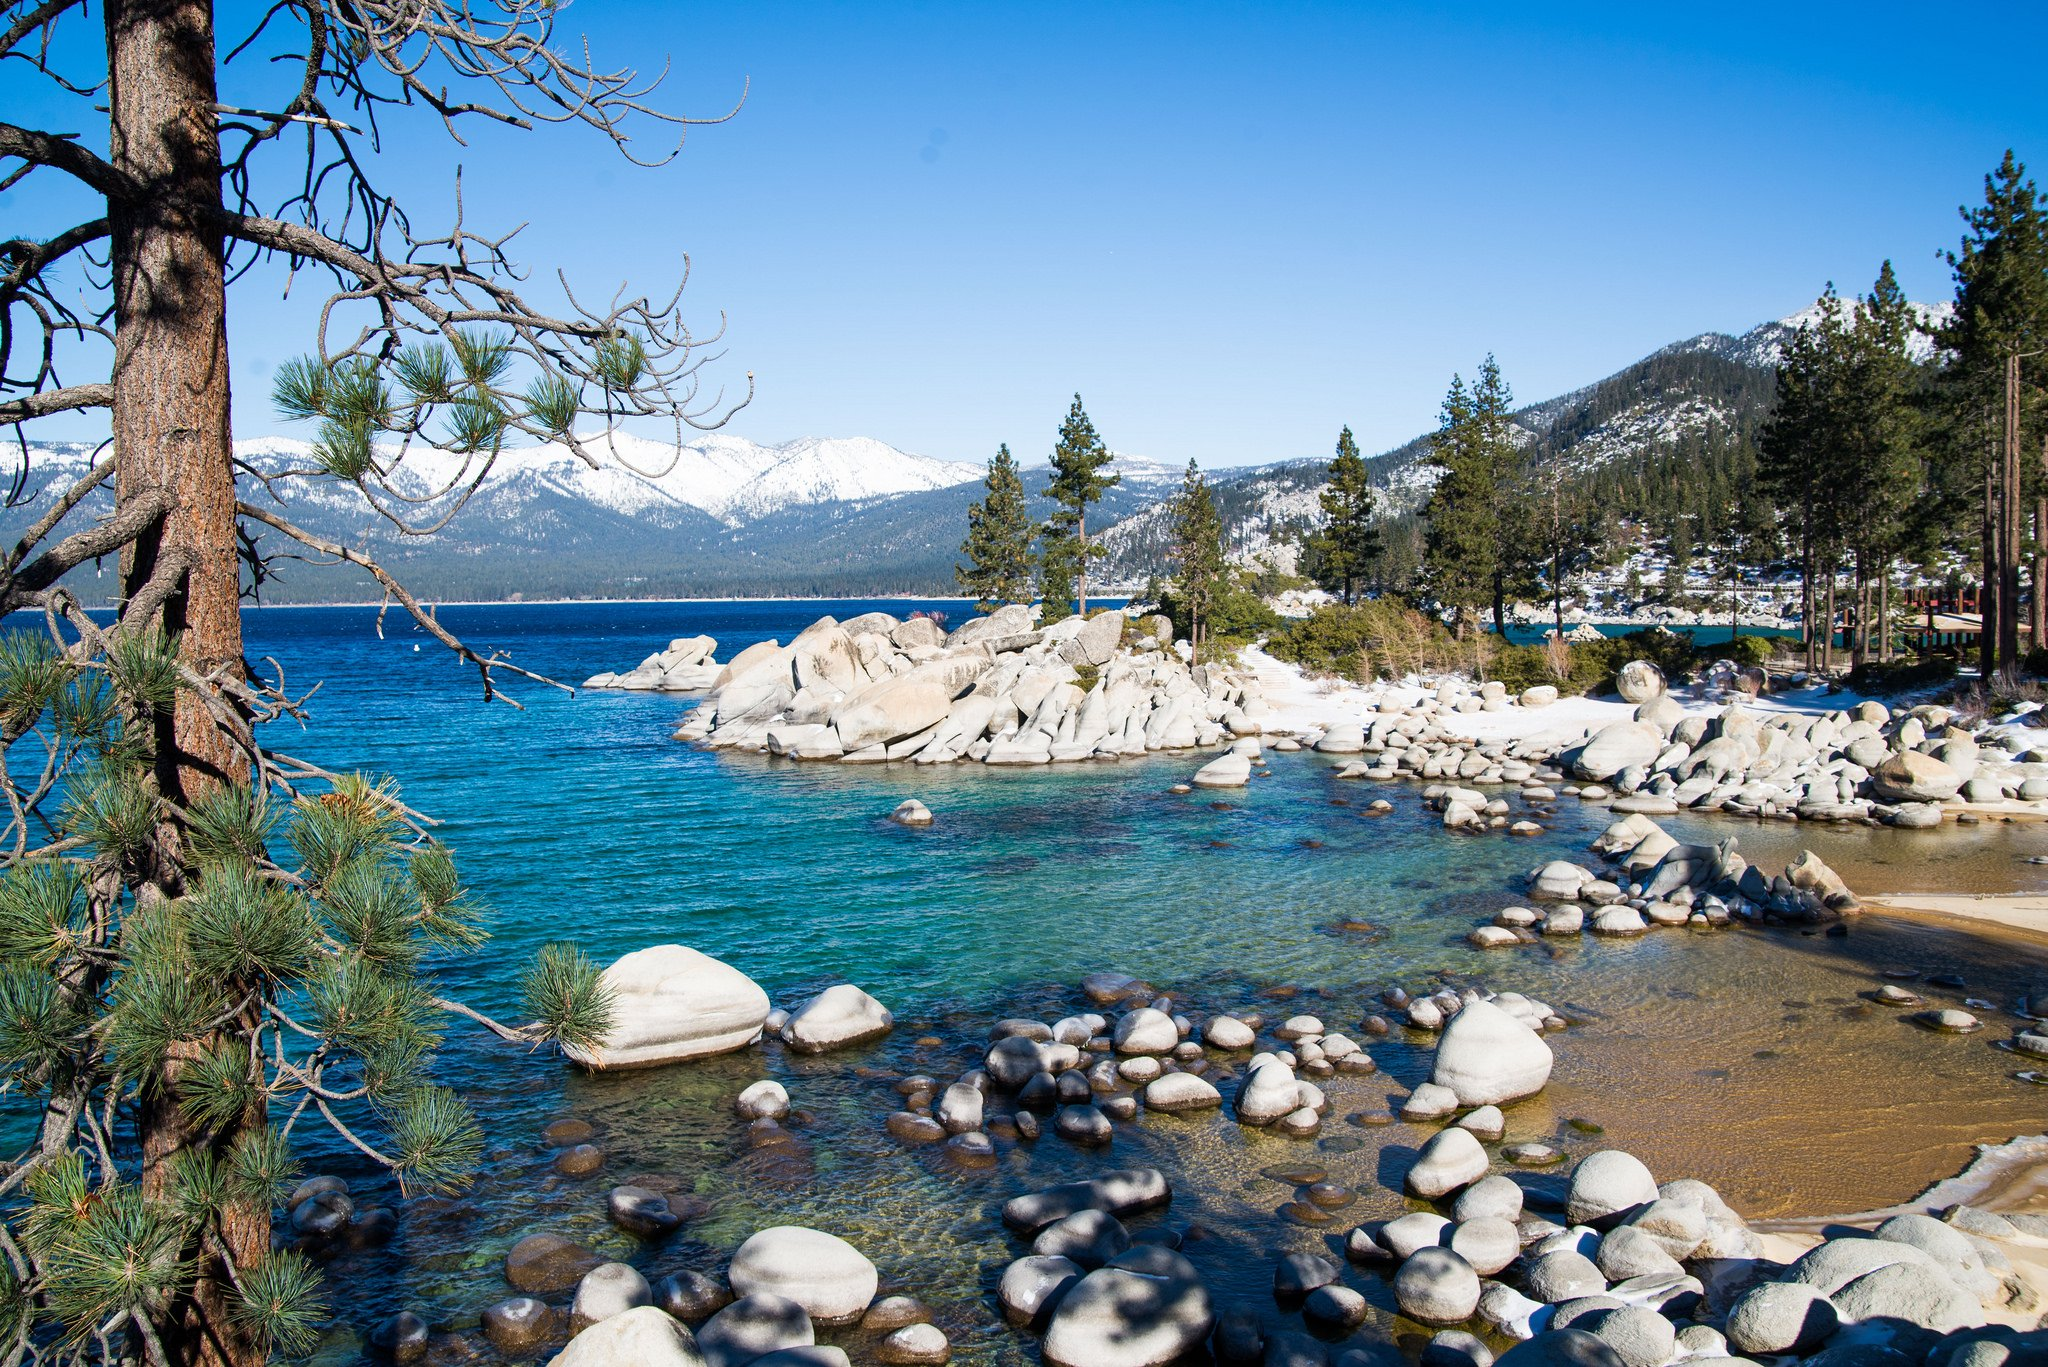 17 Easy Ways to Save Money on Travel - Lake Tahoe, California, USA